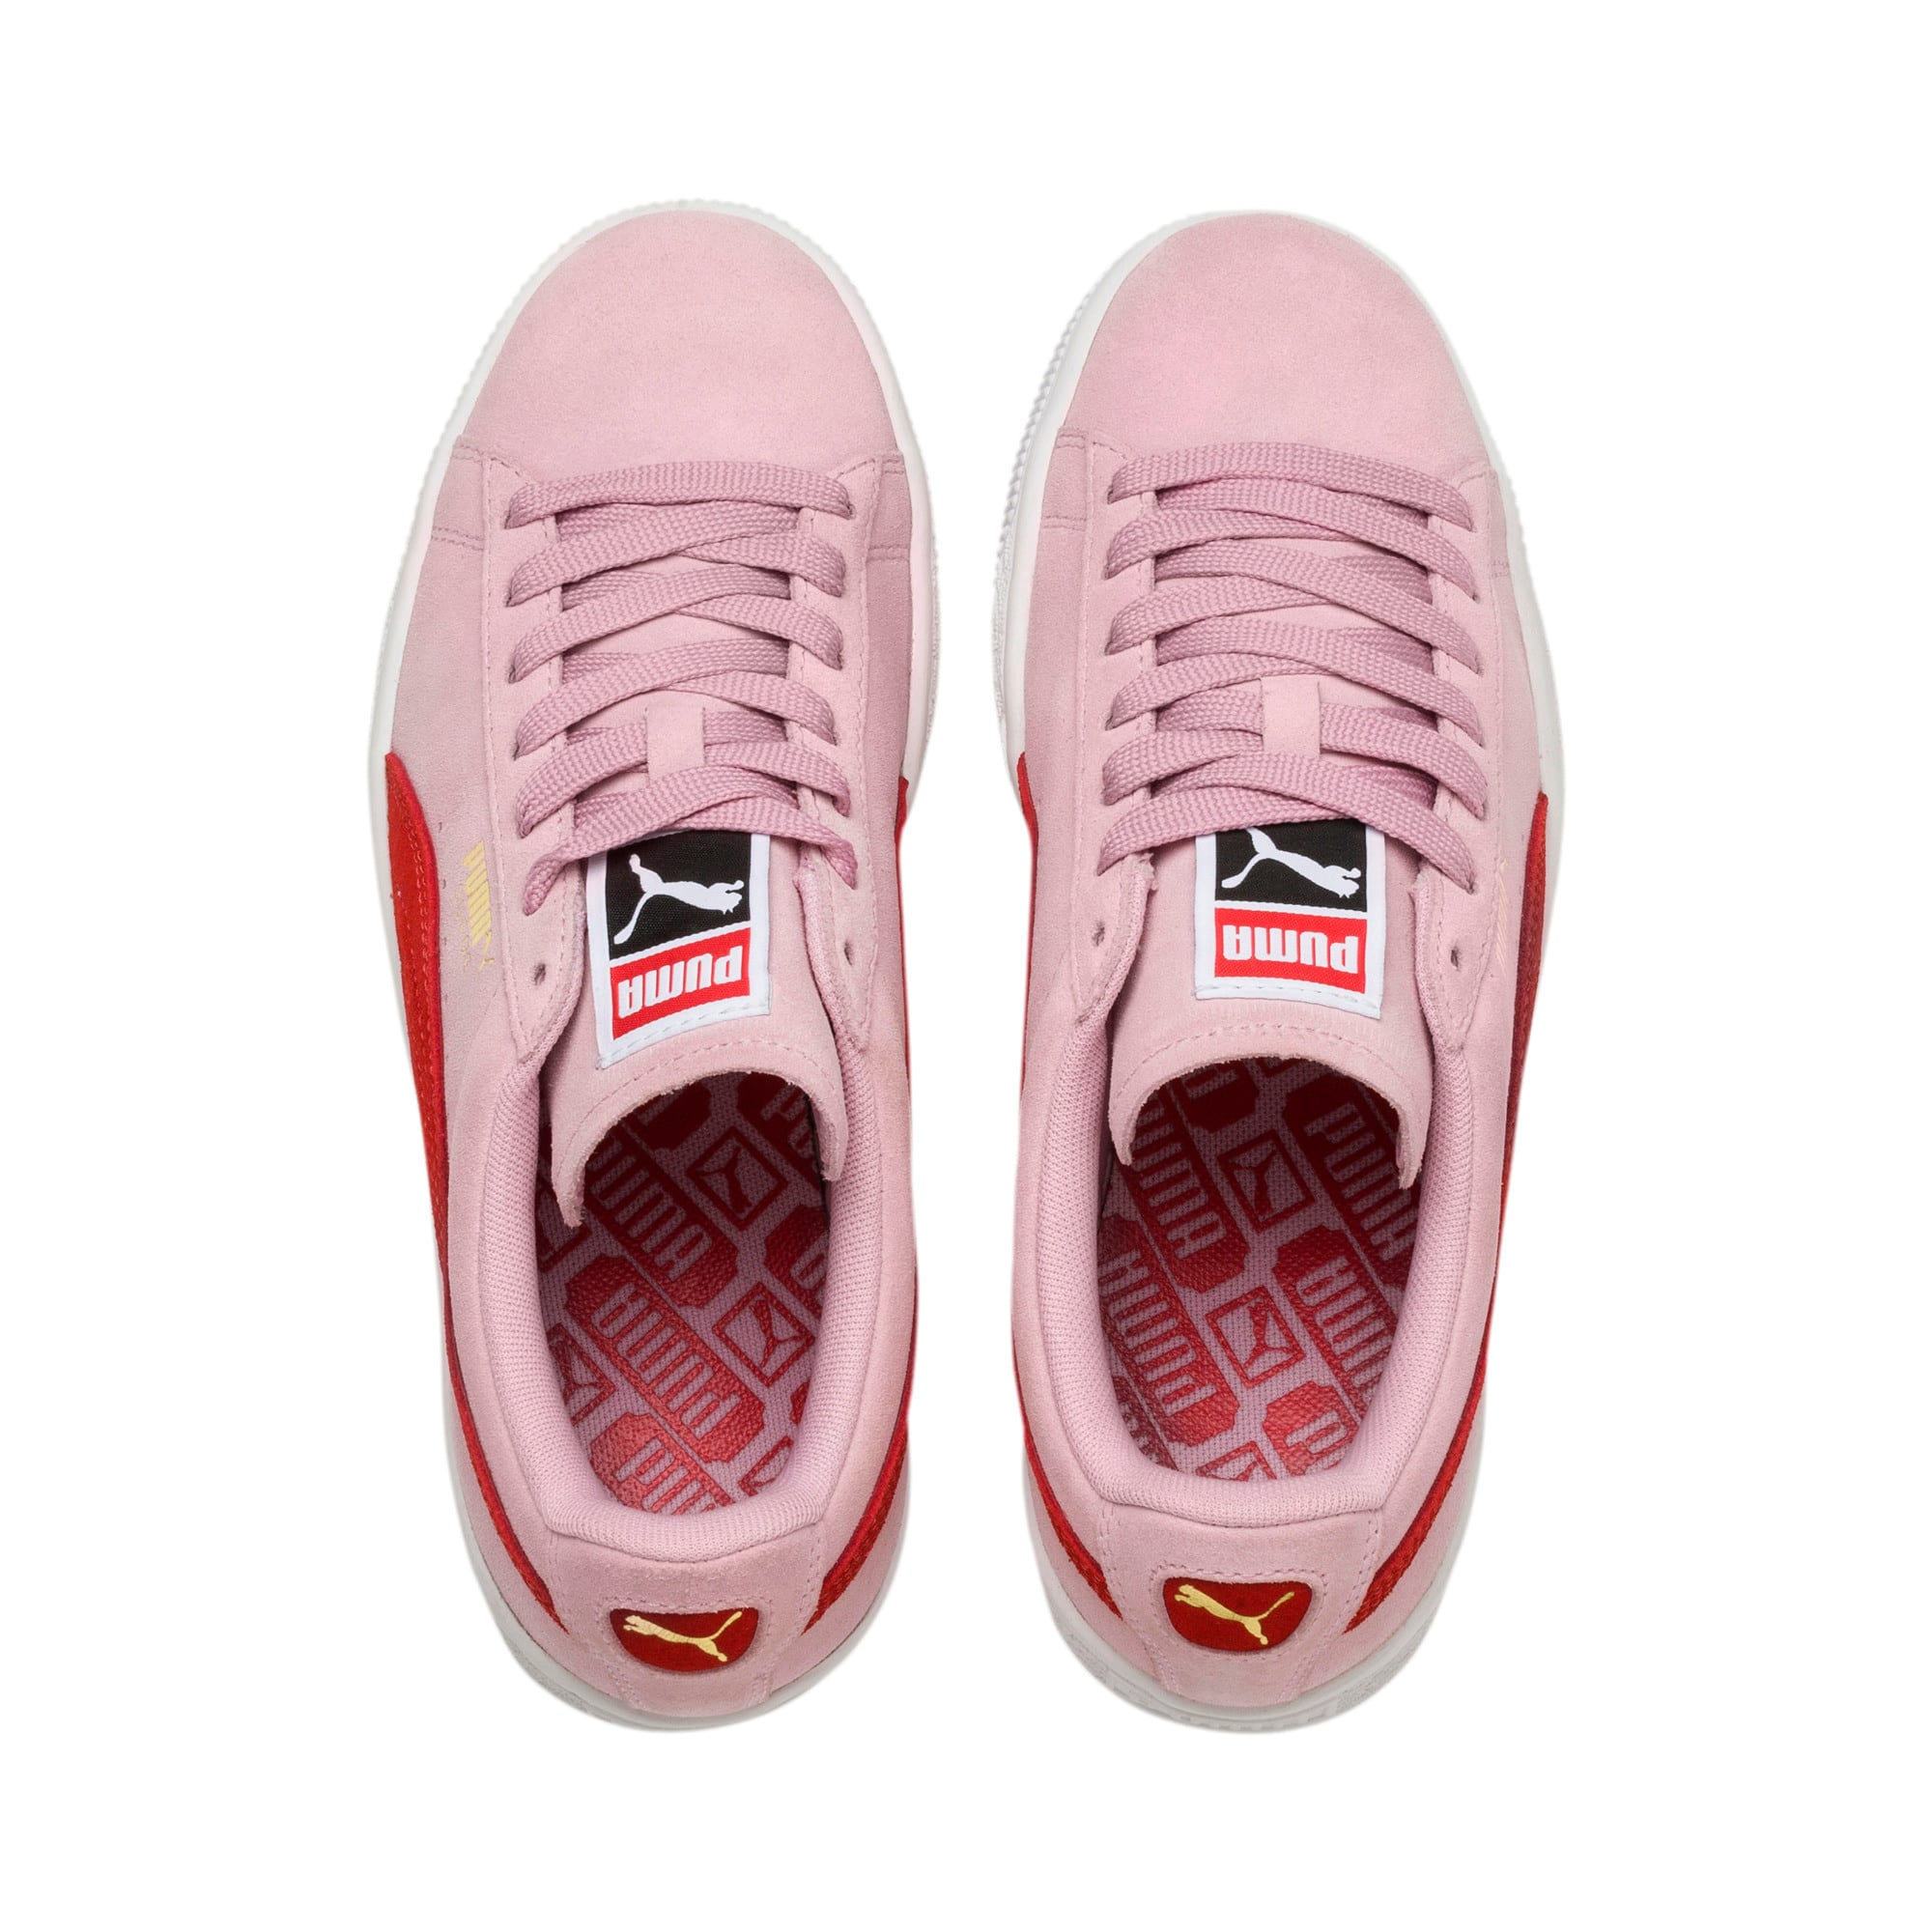 Thumbnail 6 of Suede Classic Women's Sneakers, Pale Pink-Hibiscus, medium